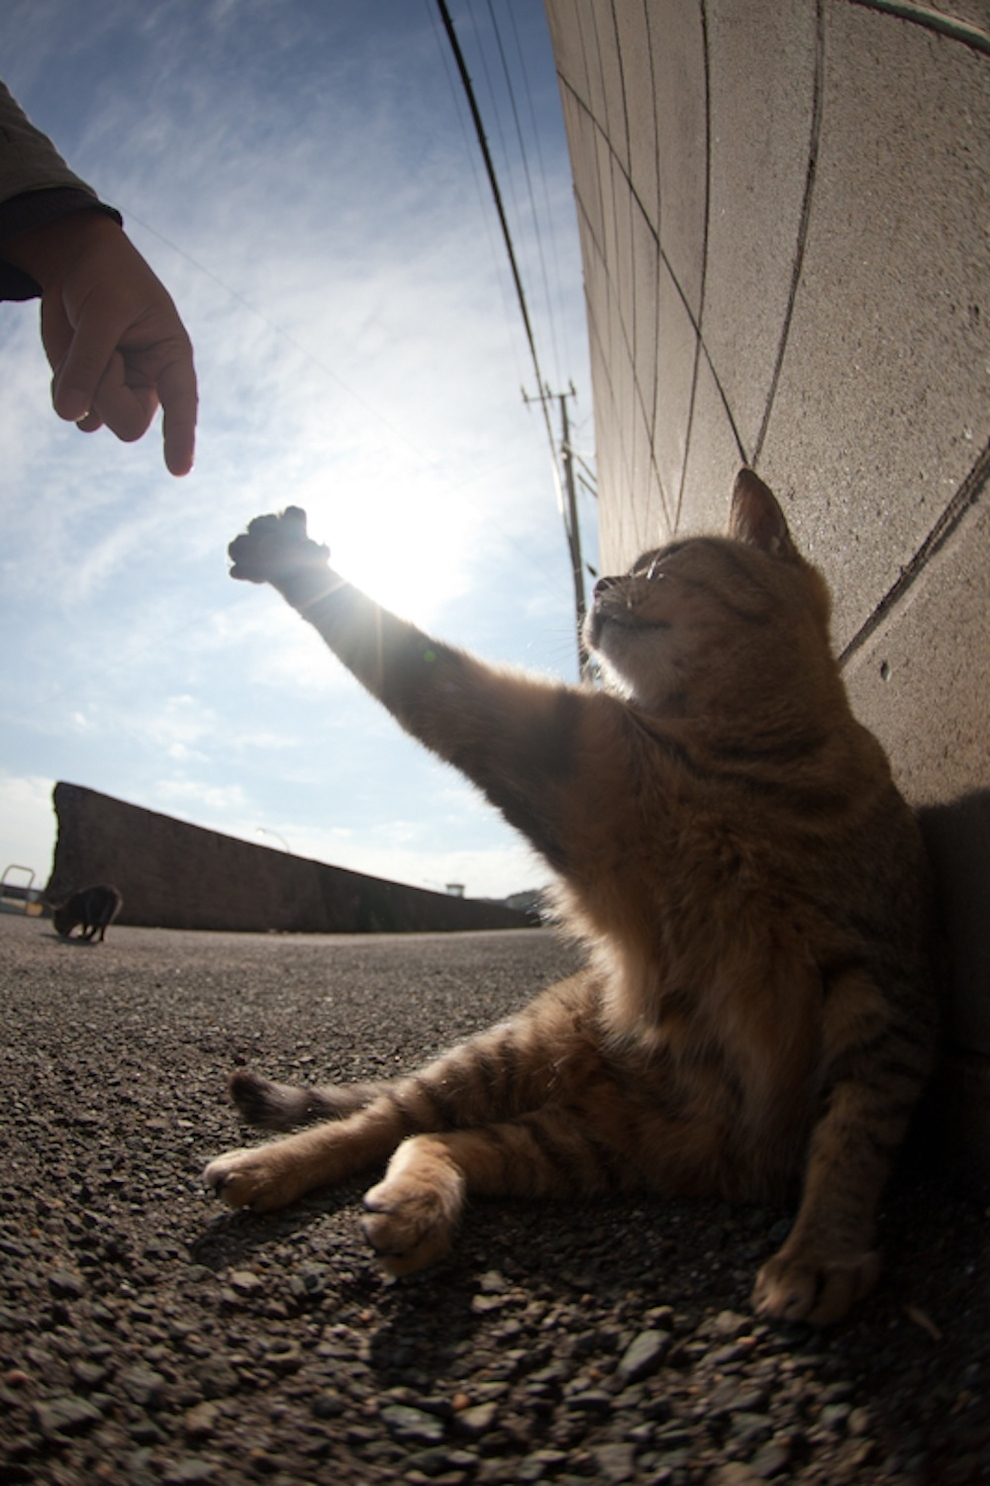 give me five!!